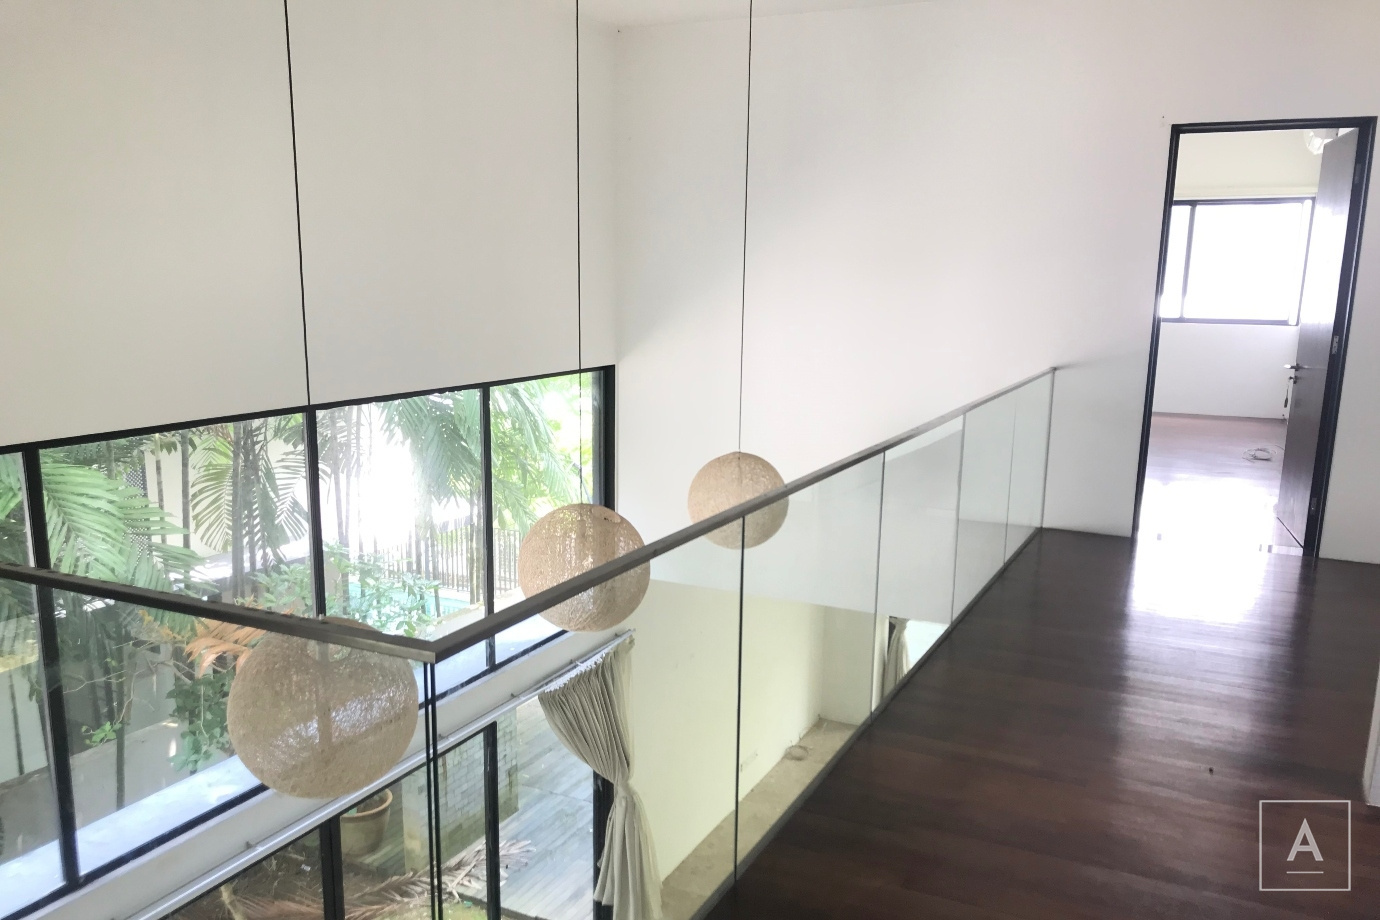 20 Trees West, Ampang, 5 Bedrooms Bedrooms, ,6 BathroomsBathrooms,Bungalow / Detached,For Sale,Ampang,20 Trees West,2074